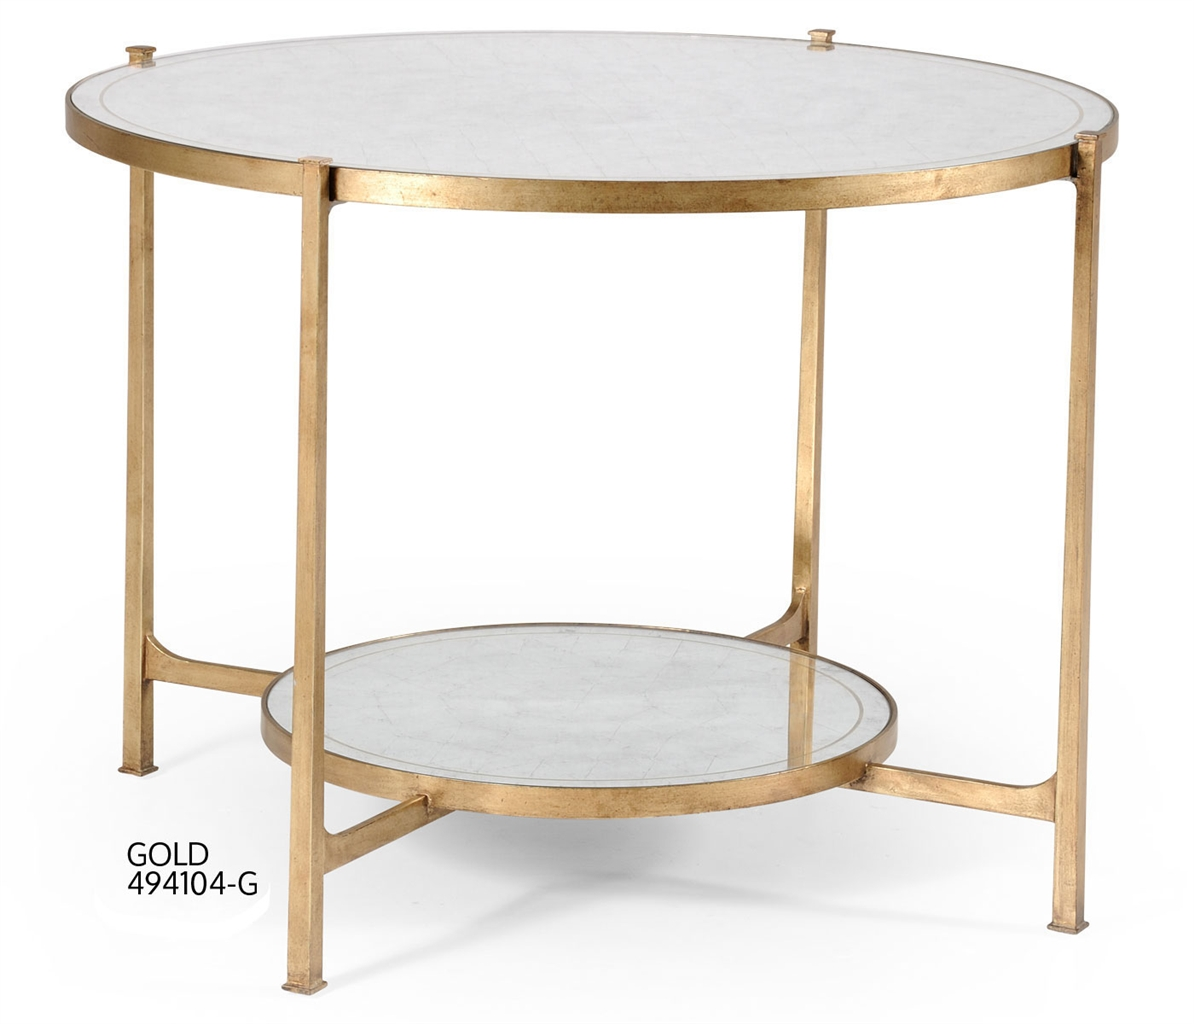 Center Table With Glass : Buy Circular Center Table, Glass Top Coffee Tables